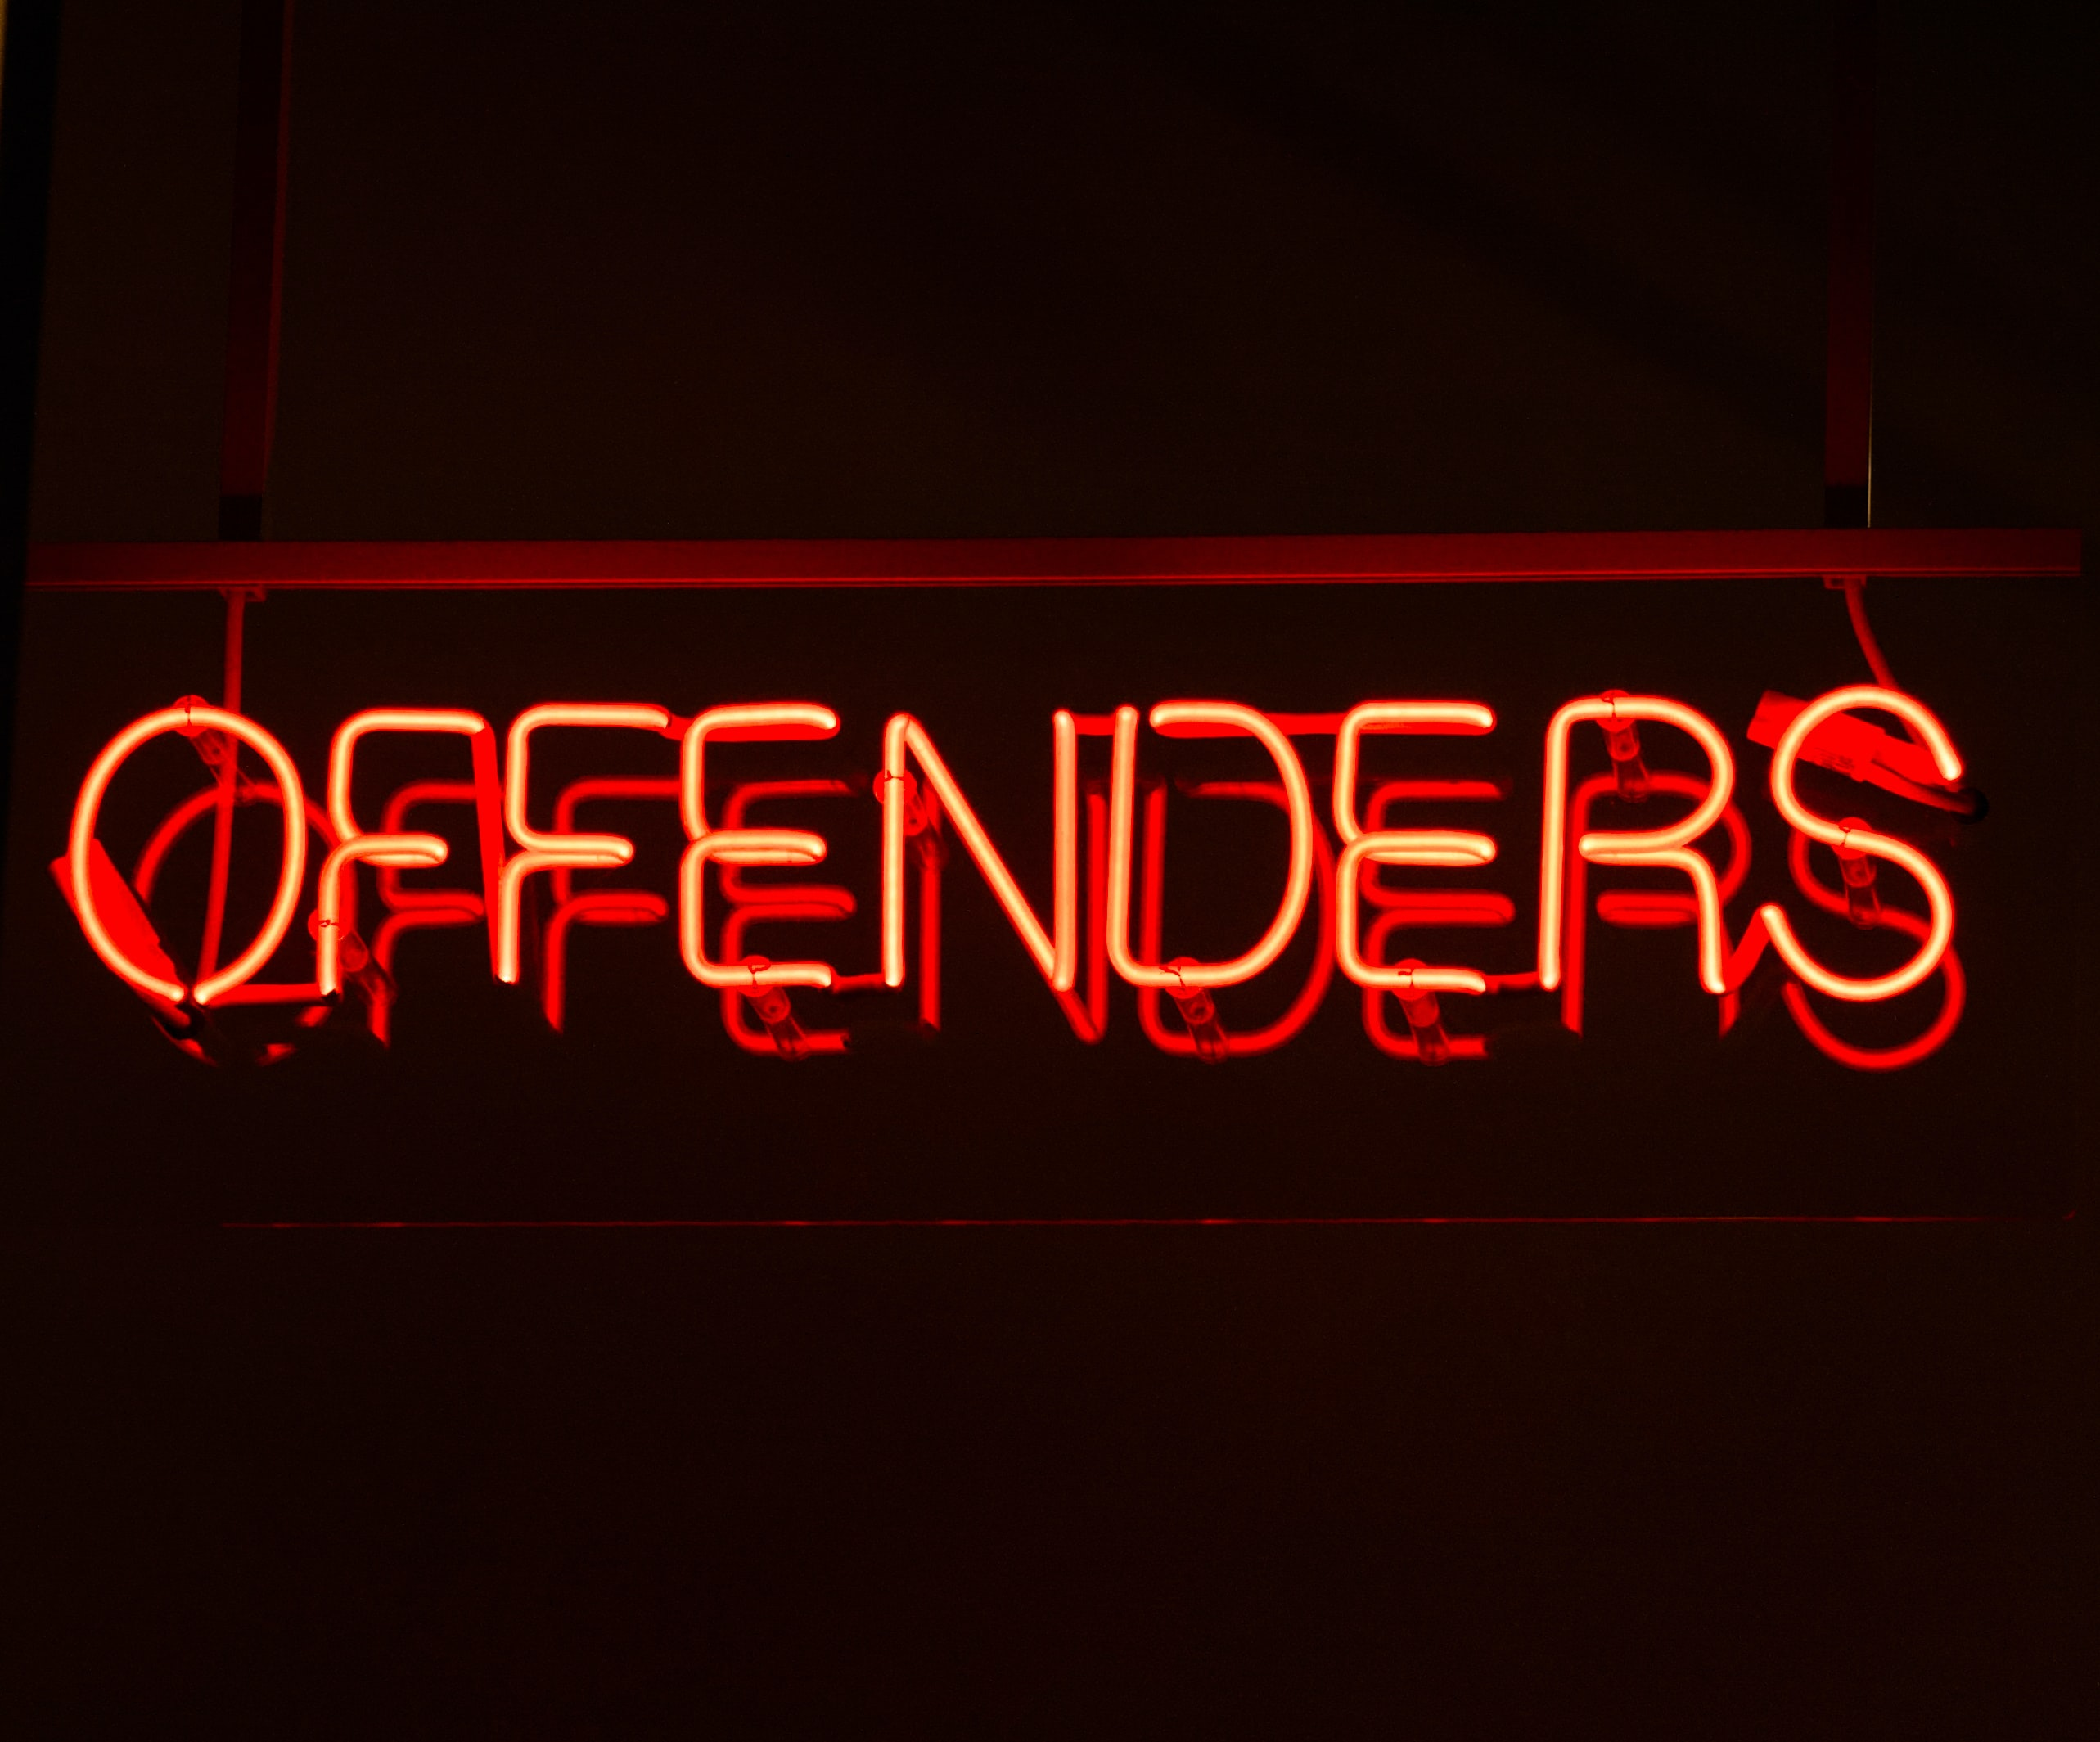 red neon lighted offenders signage